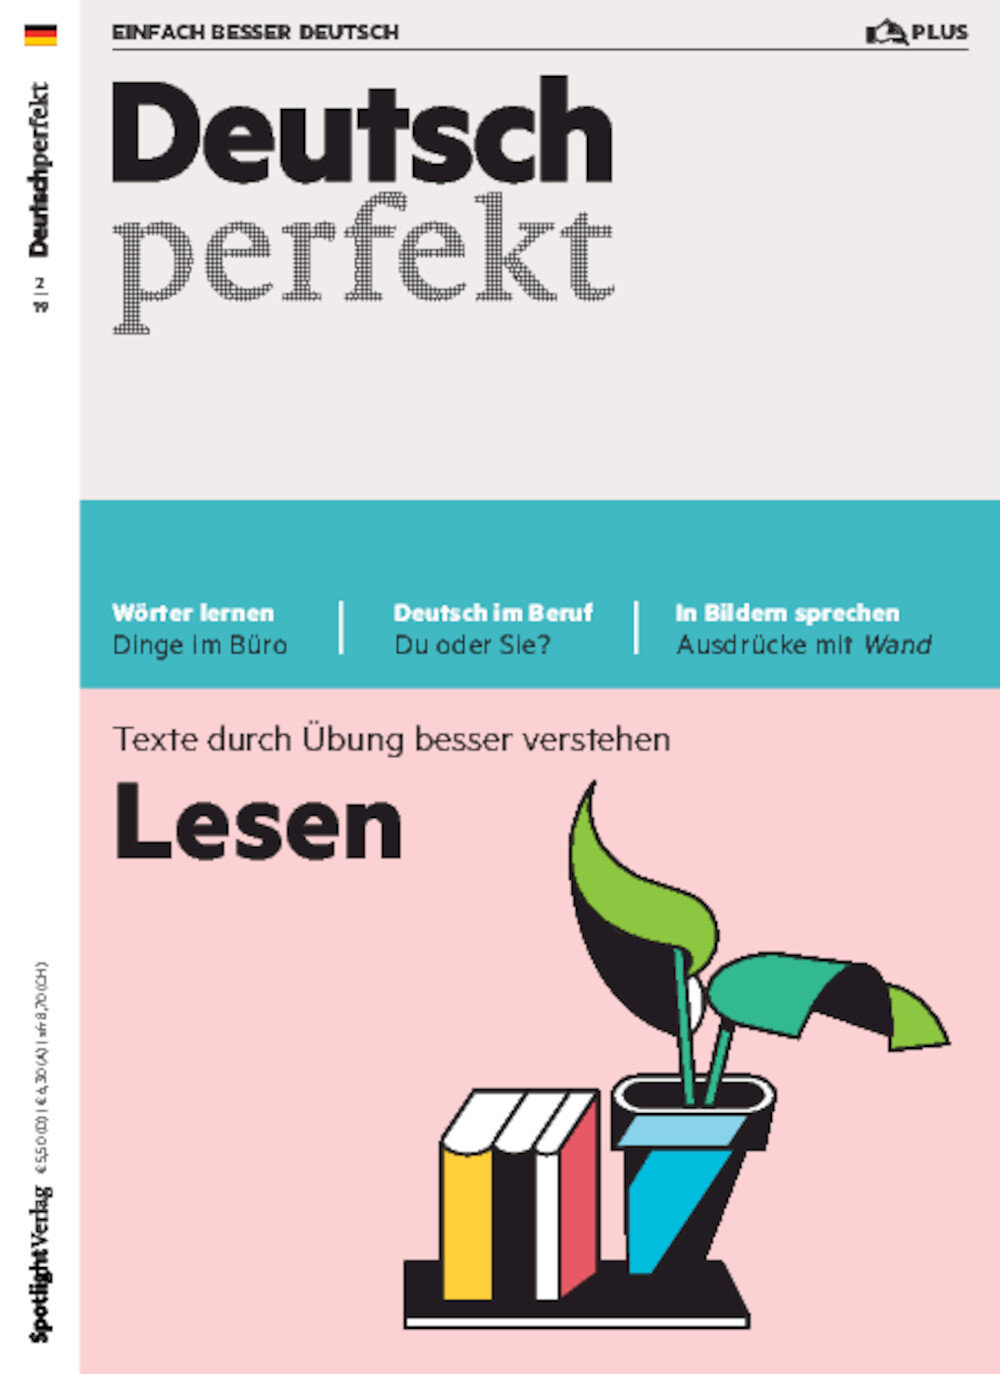 Deutsch perfekt PLUS 02/2019